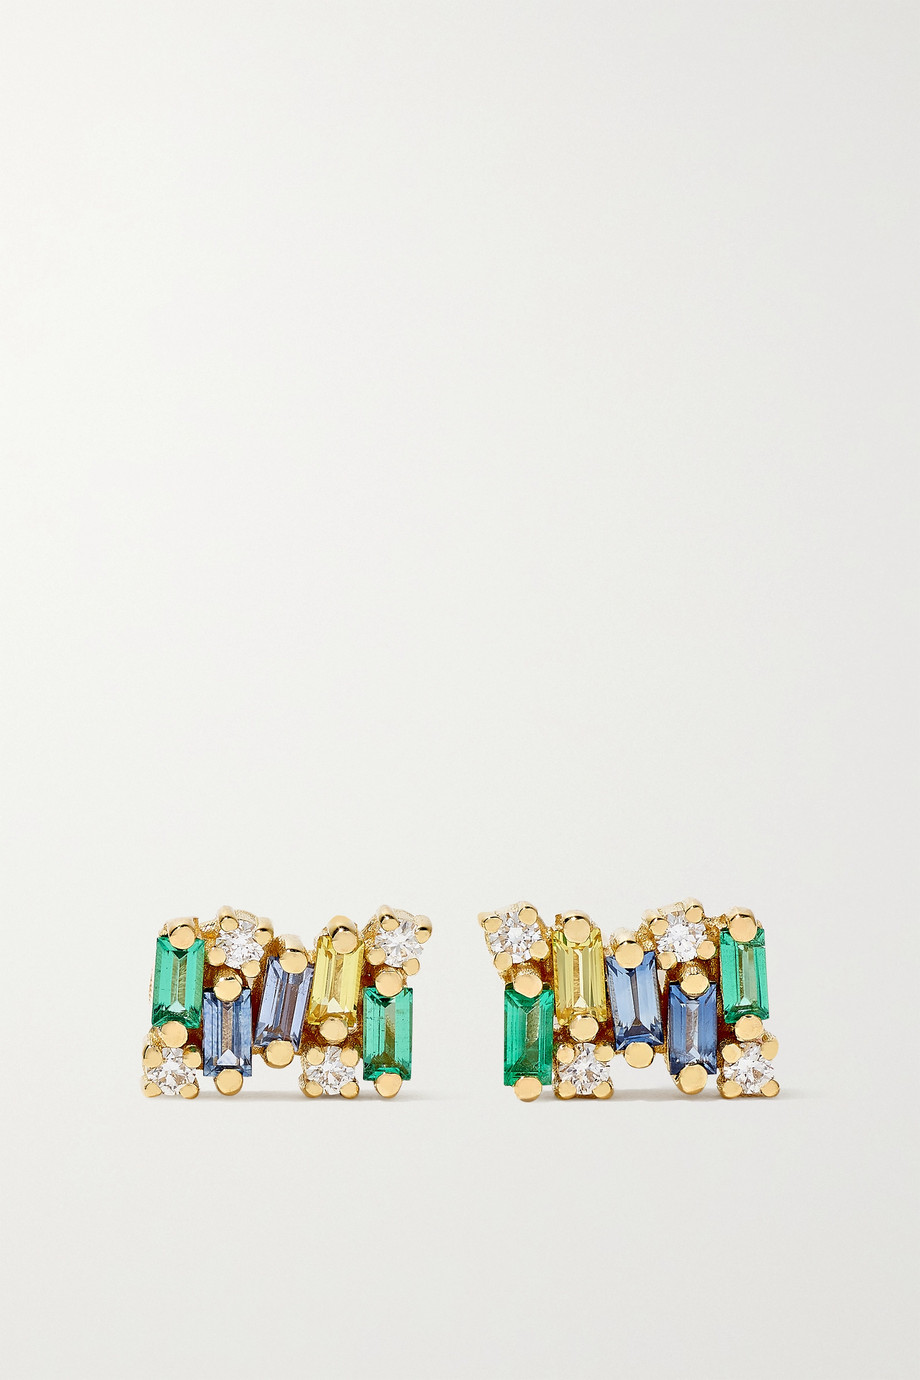 SUZANNE KALAN 18-karat gold sapphire, emerald and diamond earrings